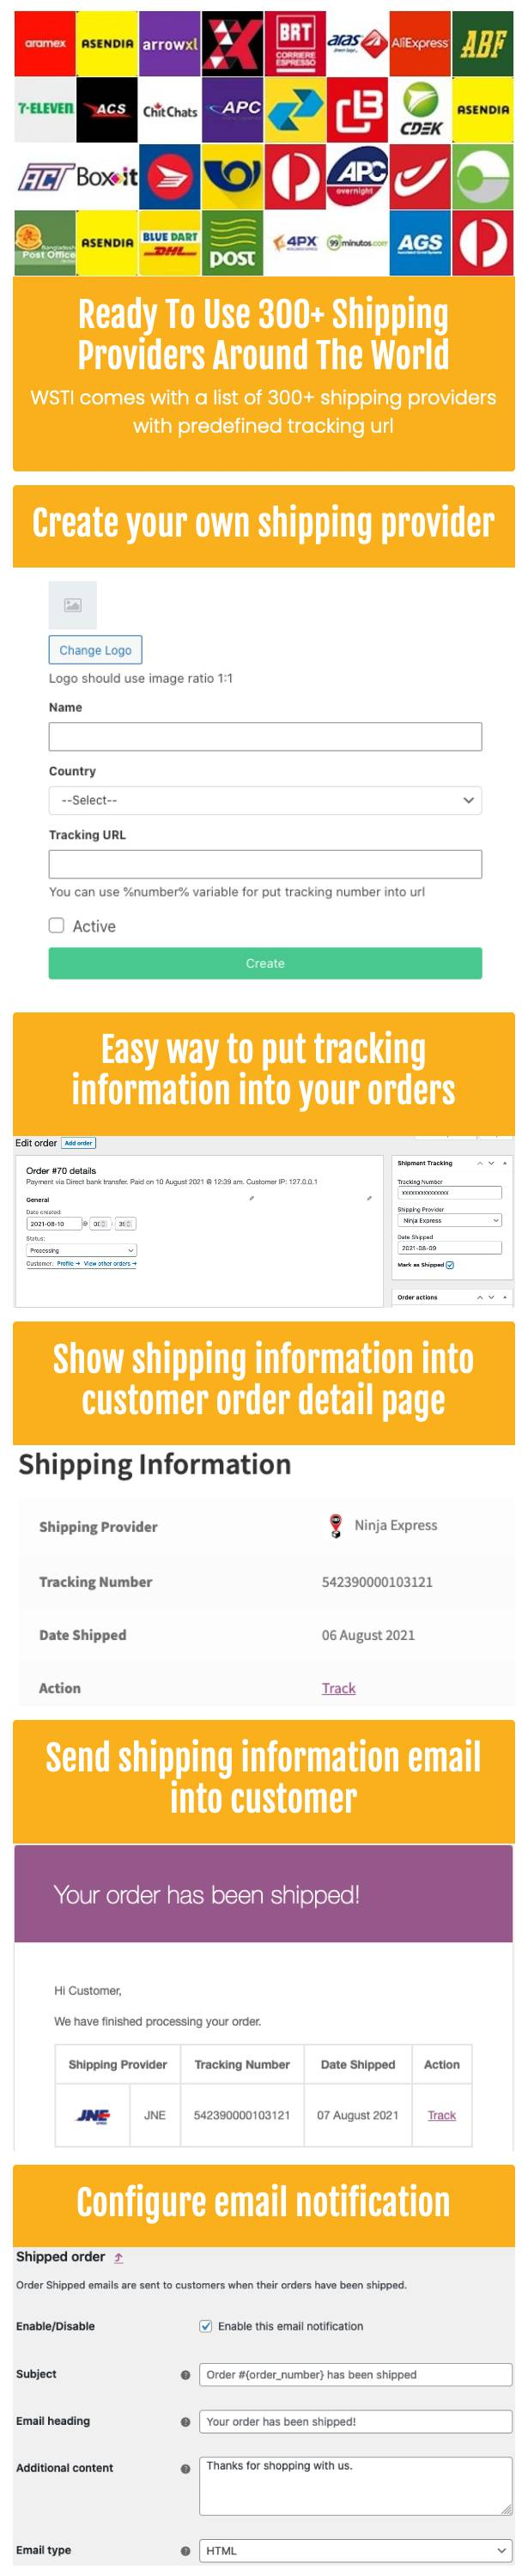 WooCommerce Shipping Tracking Information